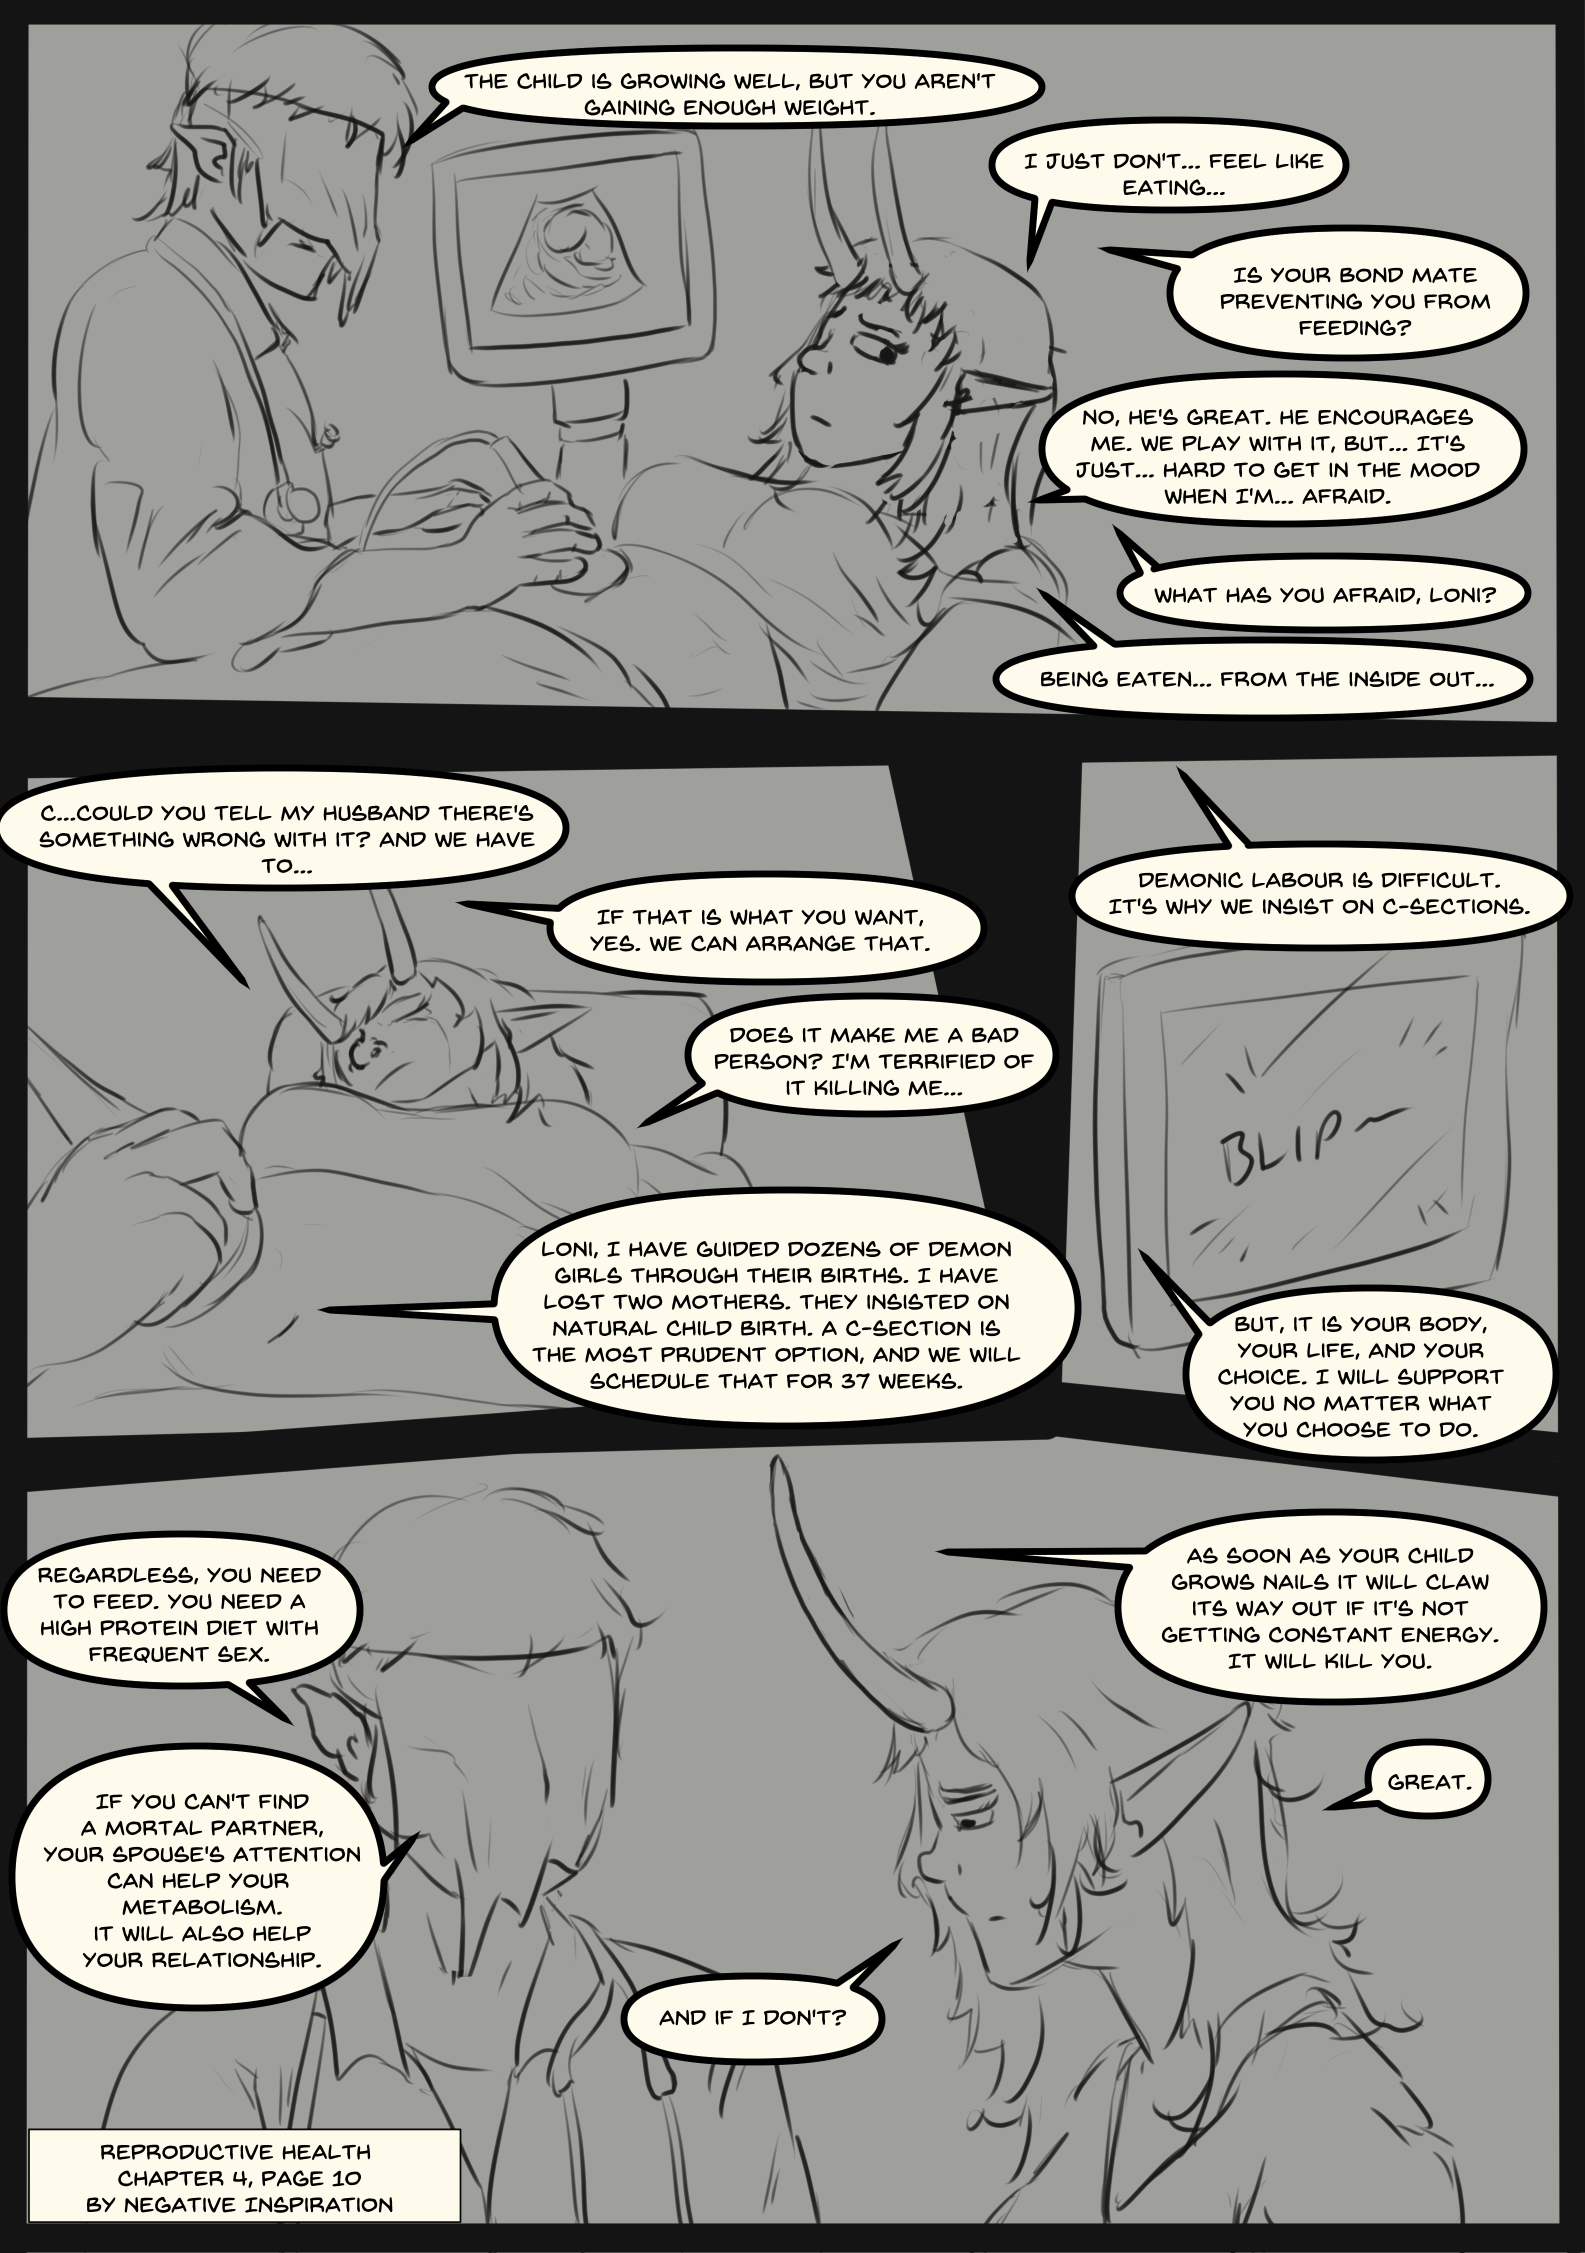 Reproductive Health: Chapter 4, Page 10